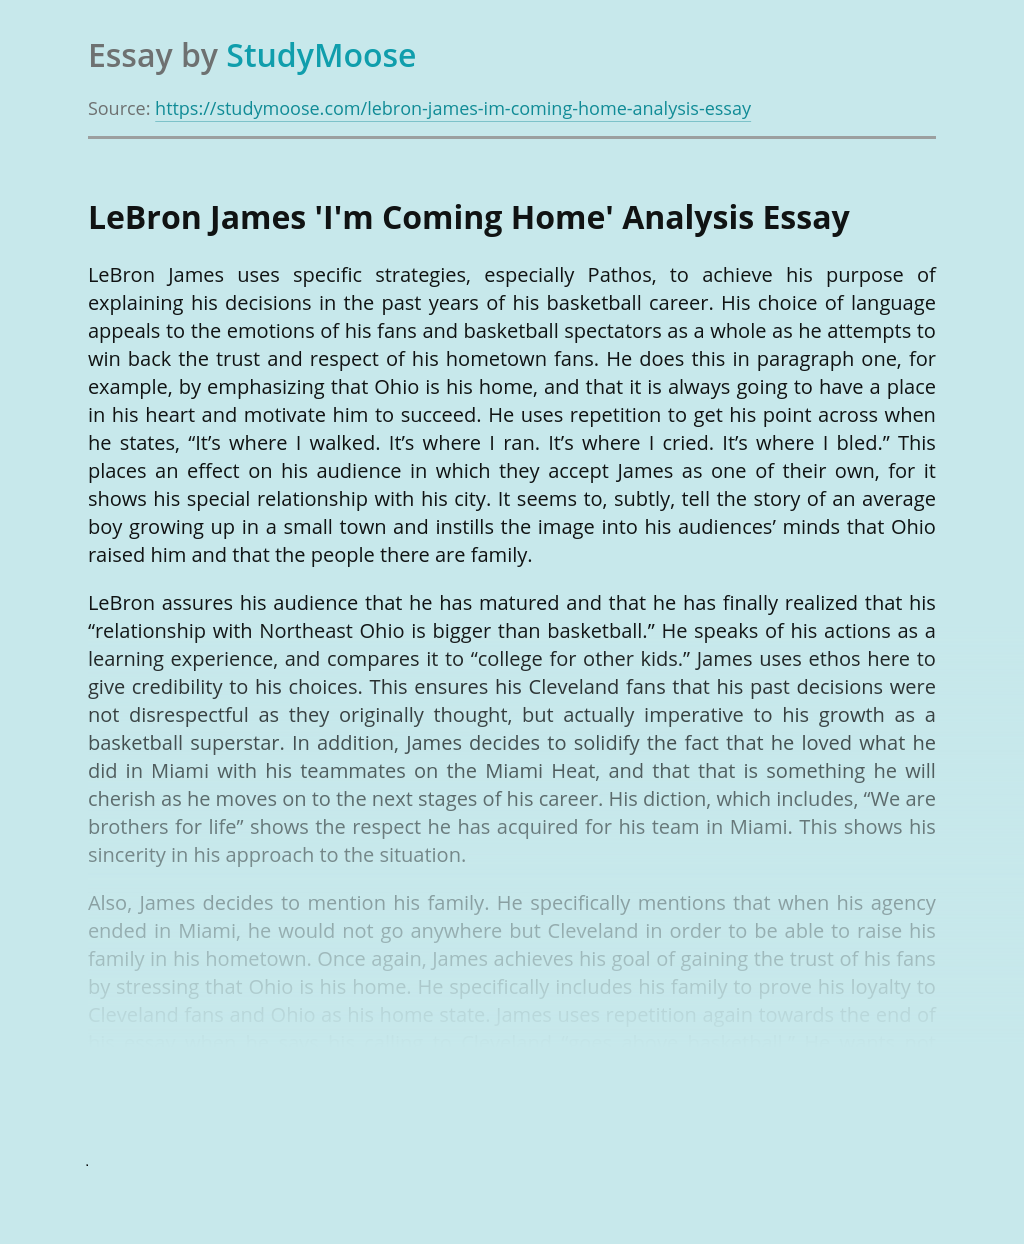 LeBron James 'I'm Coming Home' Analysis